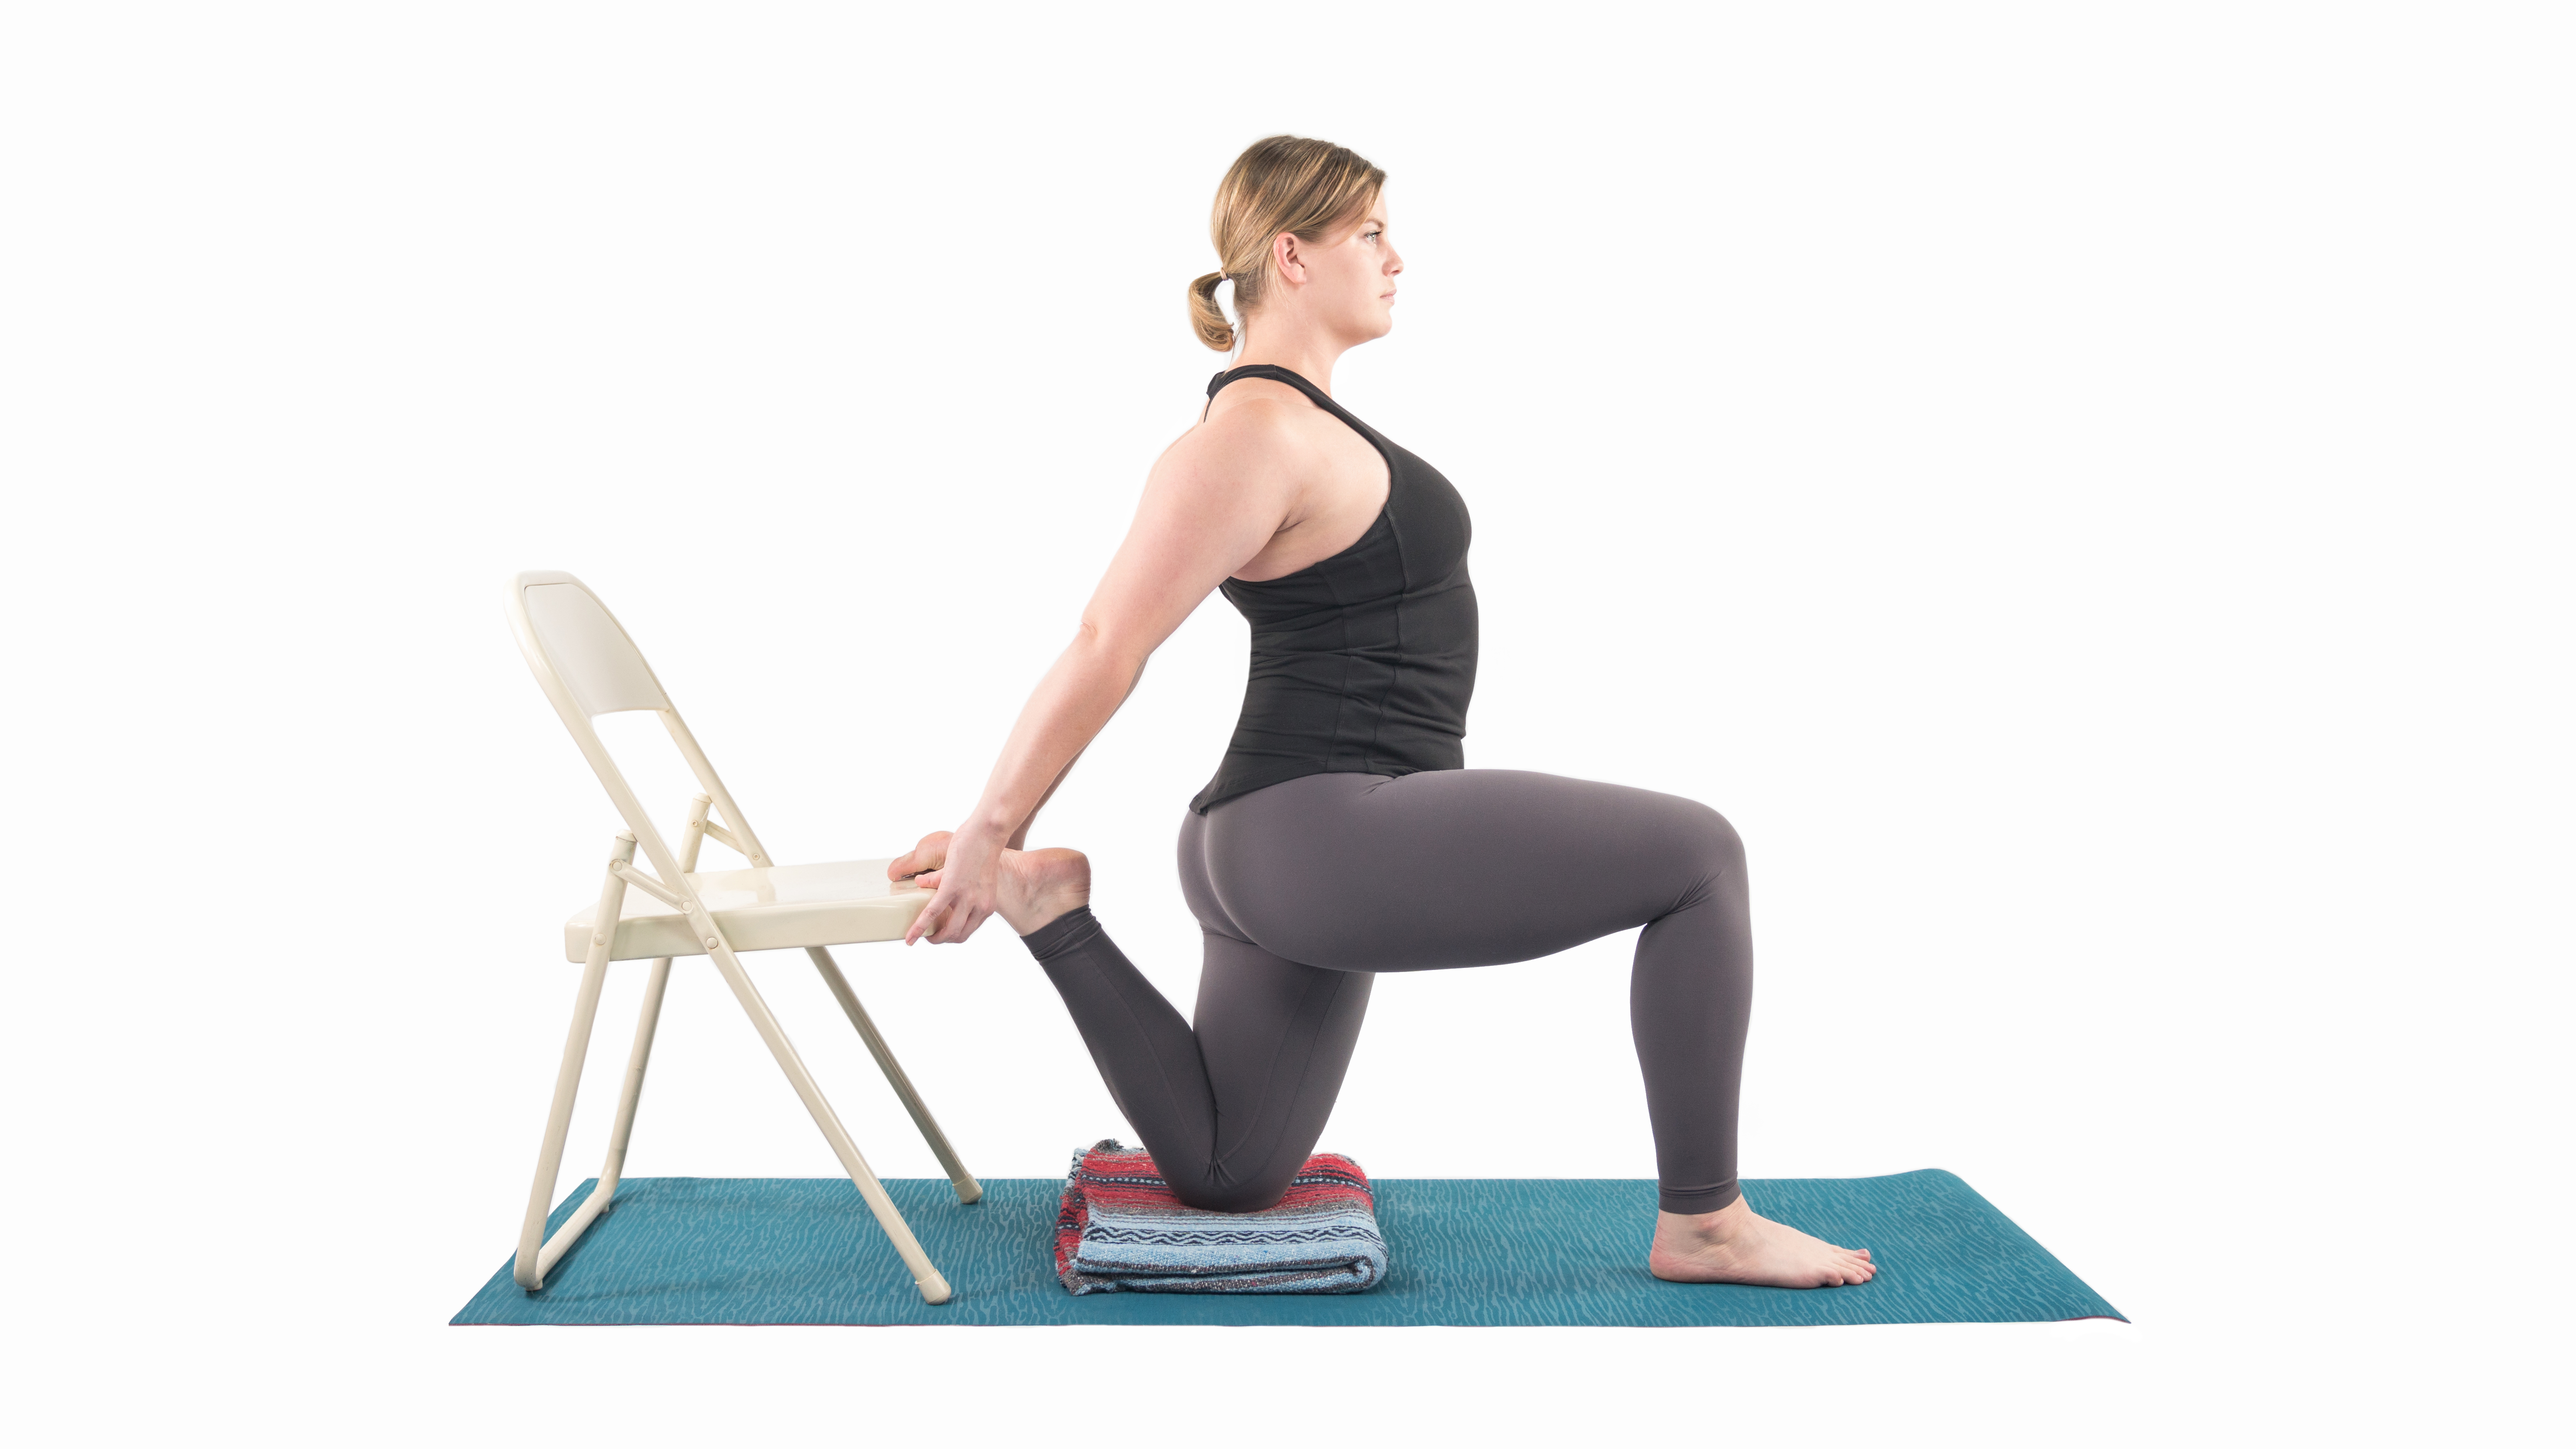 Woman performing a quad stretch with the support of a chair in preparation for the Dancer Pose